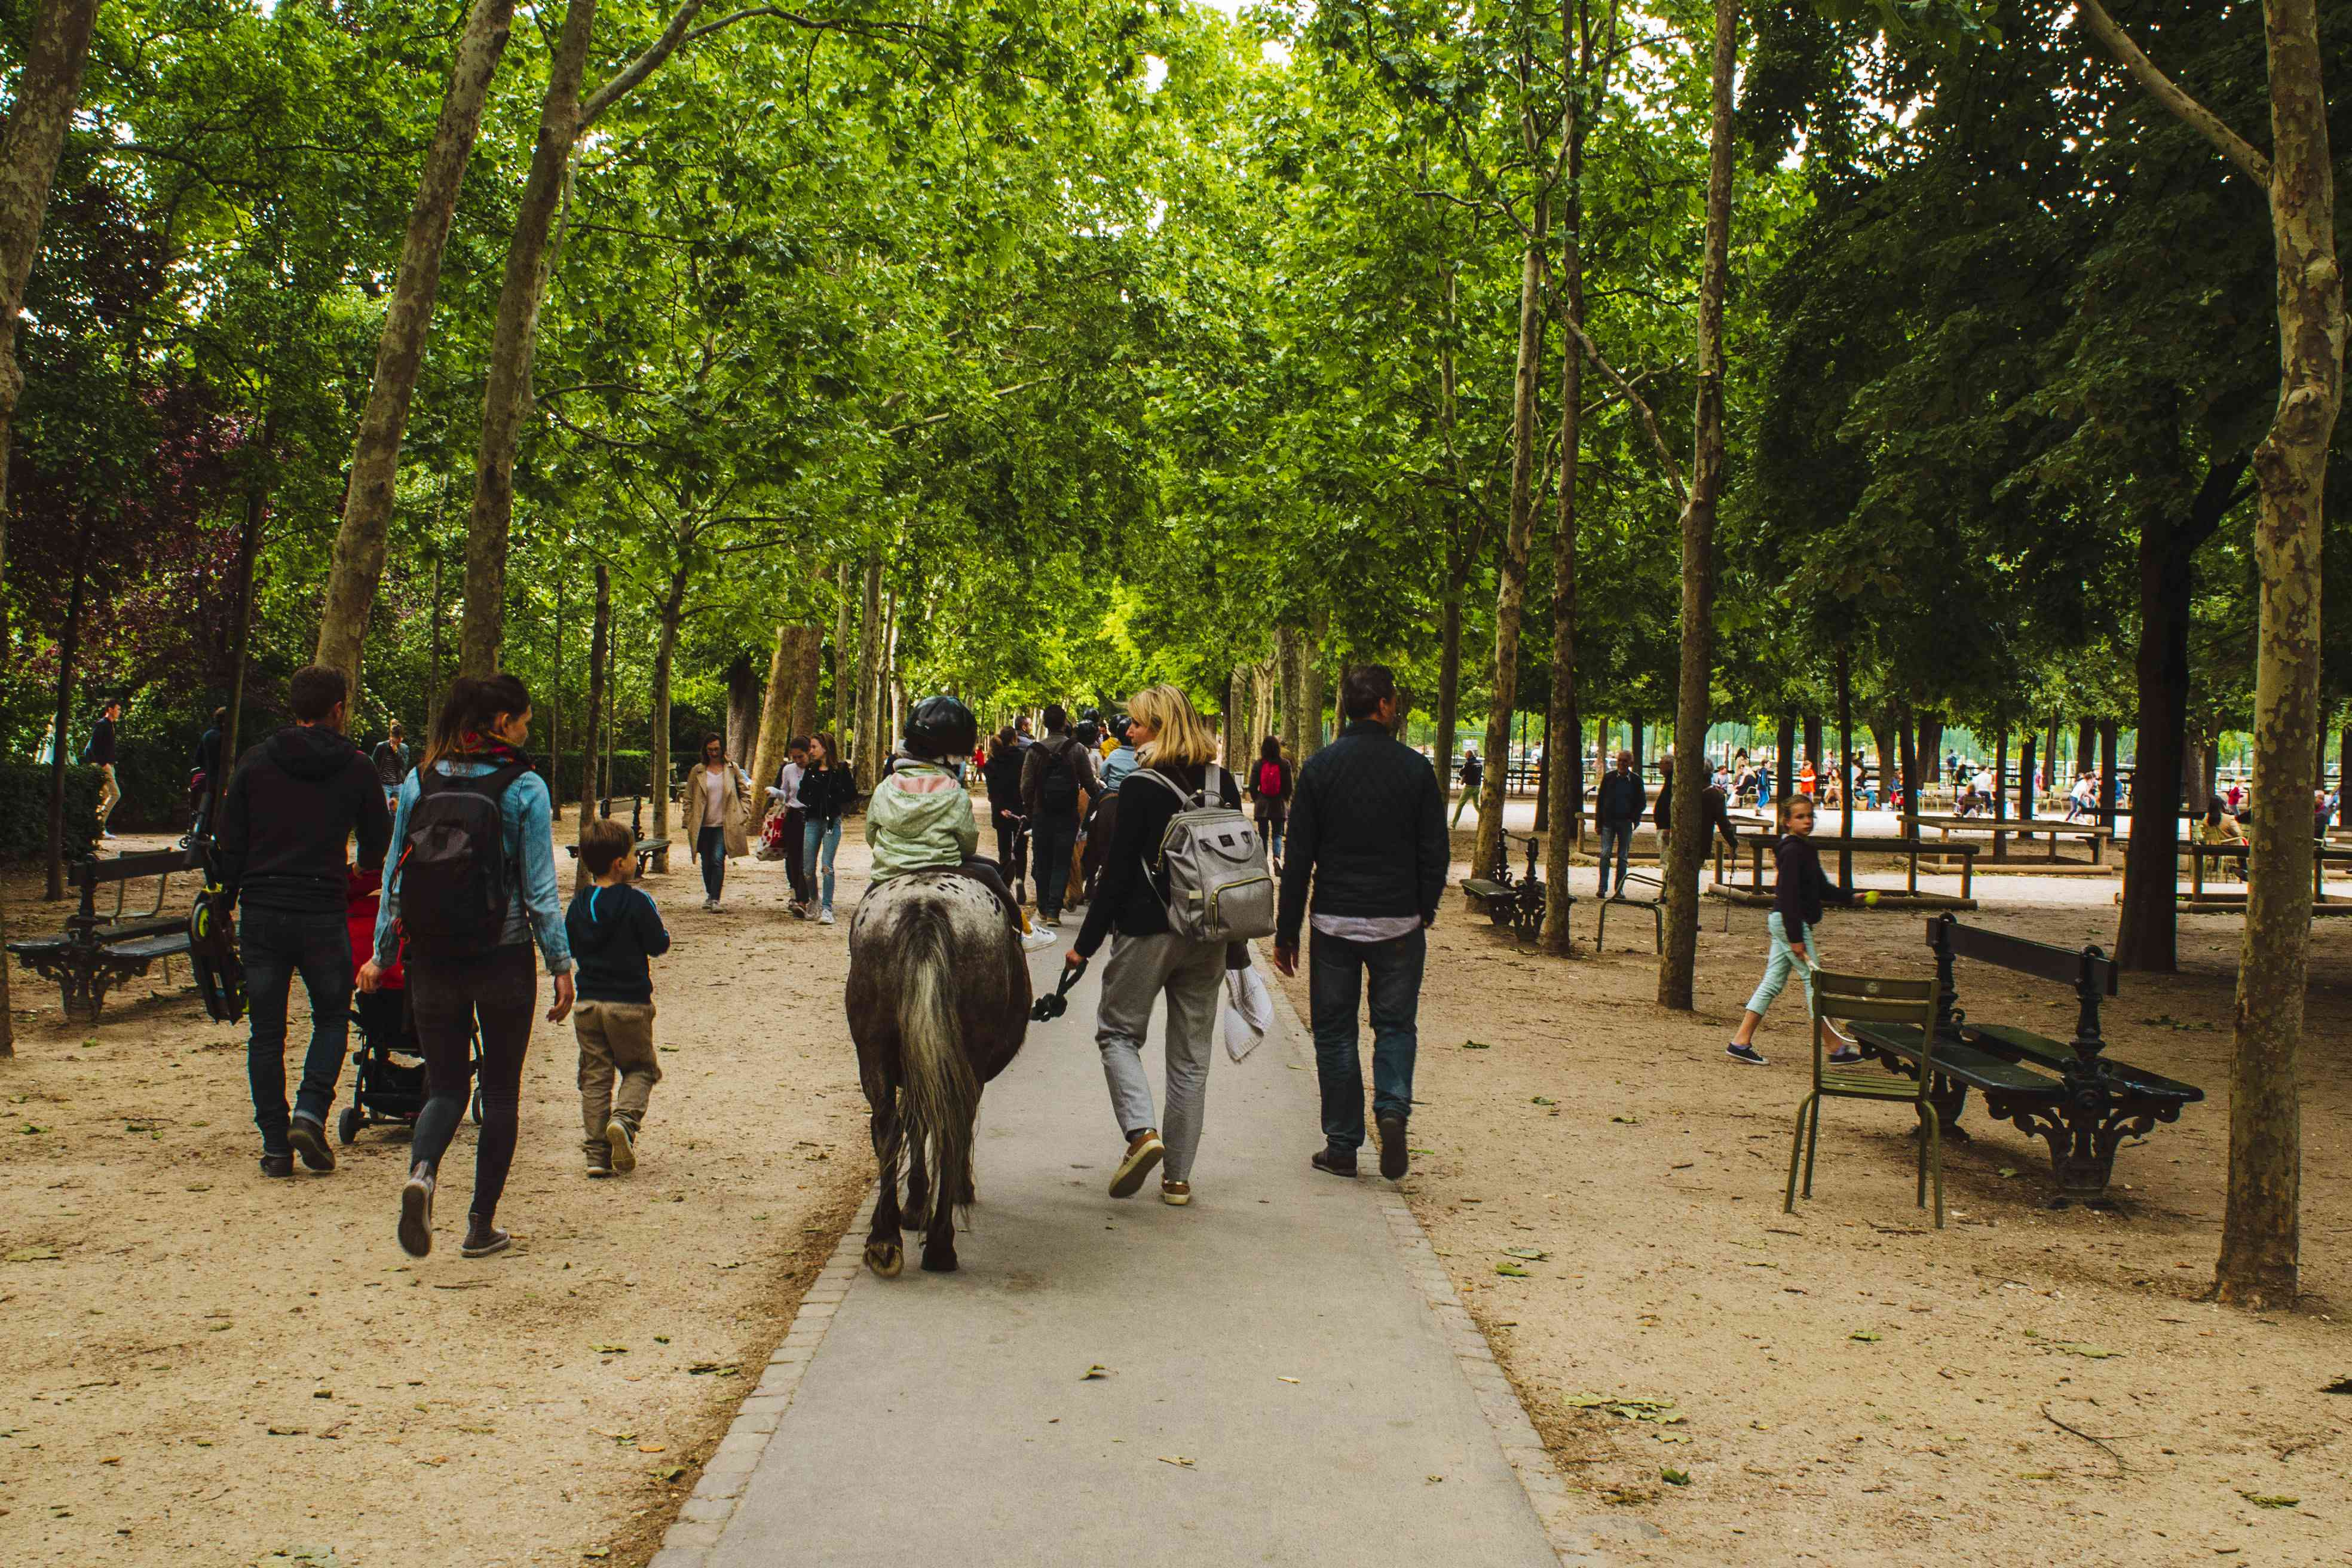 Kids riding horses in Luxembourg Garden